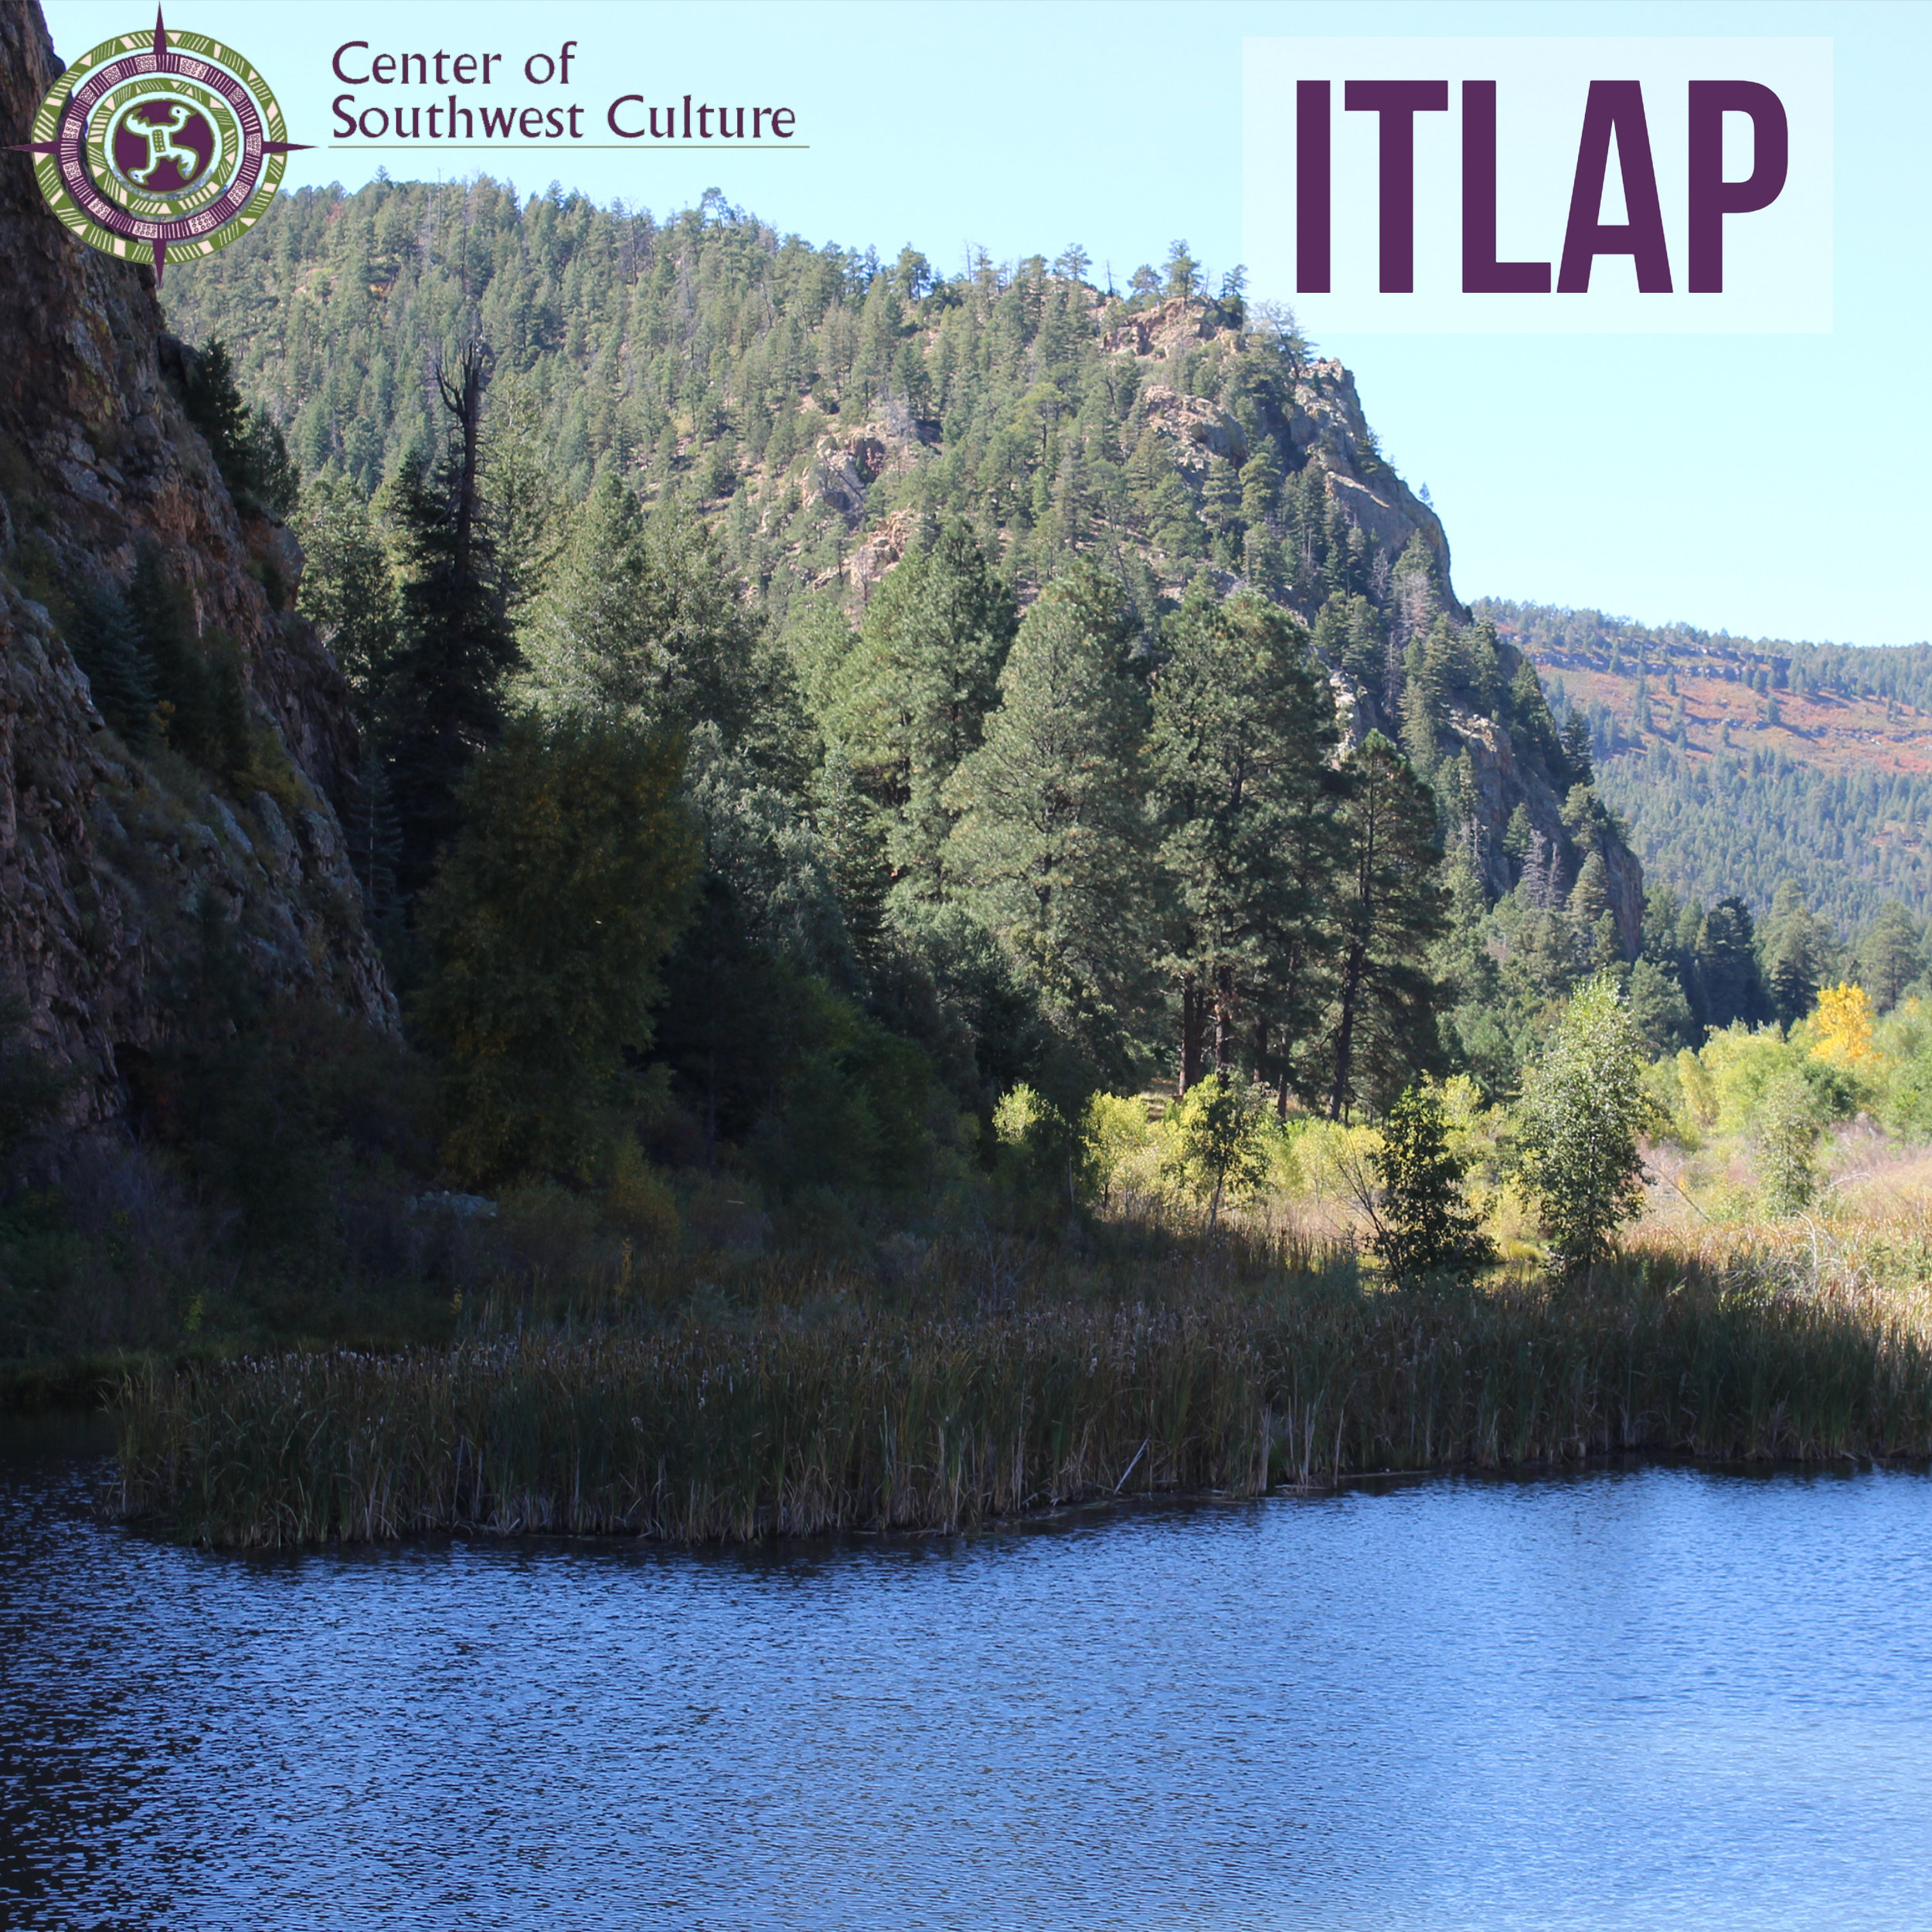 Indian Tribal Land Acquisition Program - The Farm Service Agency extends credit to Indian Tribes or Tribal corporations that do not qualify for standard commercial loans to purchase land within their own reservation or Alaskan community.PDF of information can be found here.